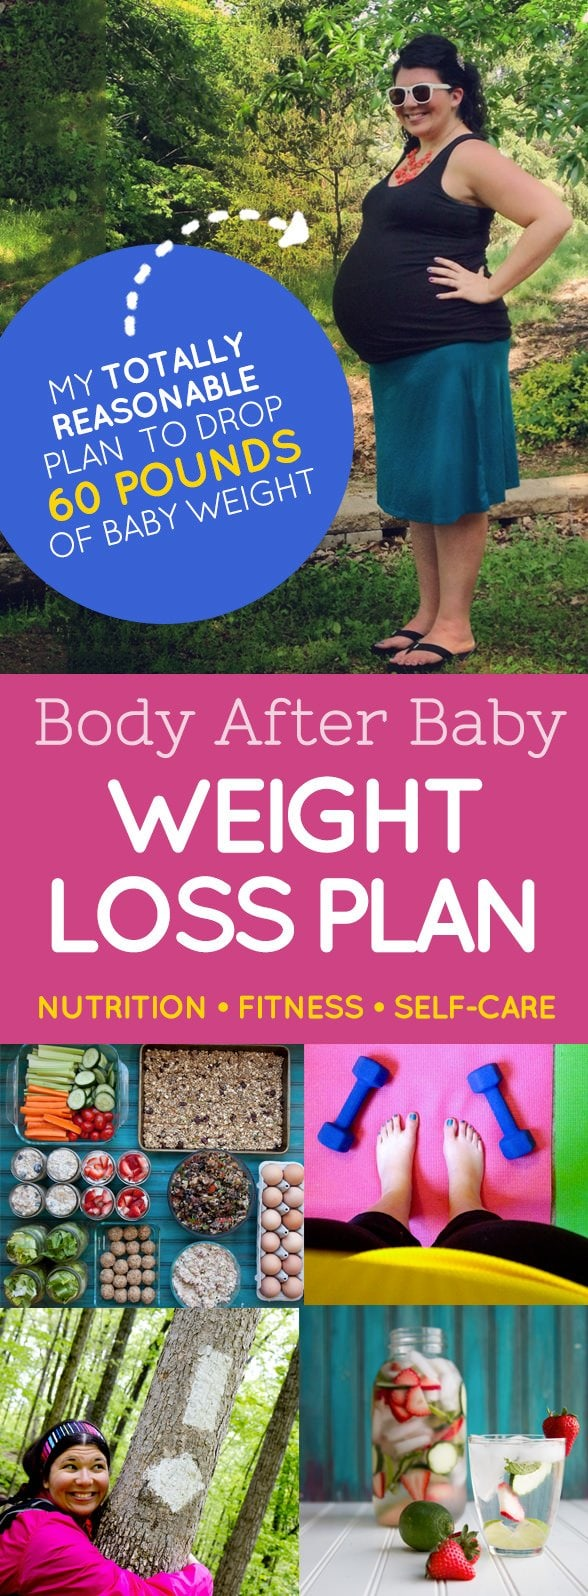 Body After Baby Weight Loss Plan